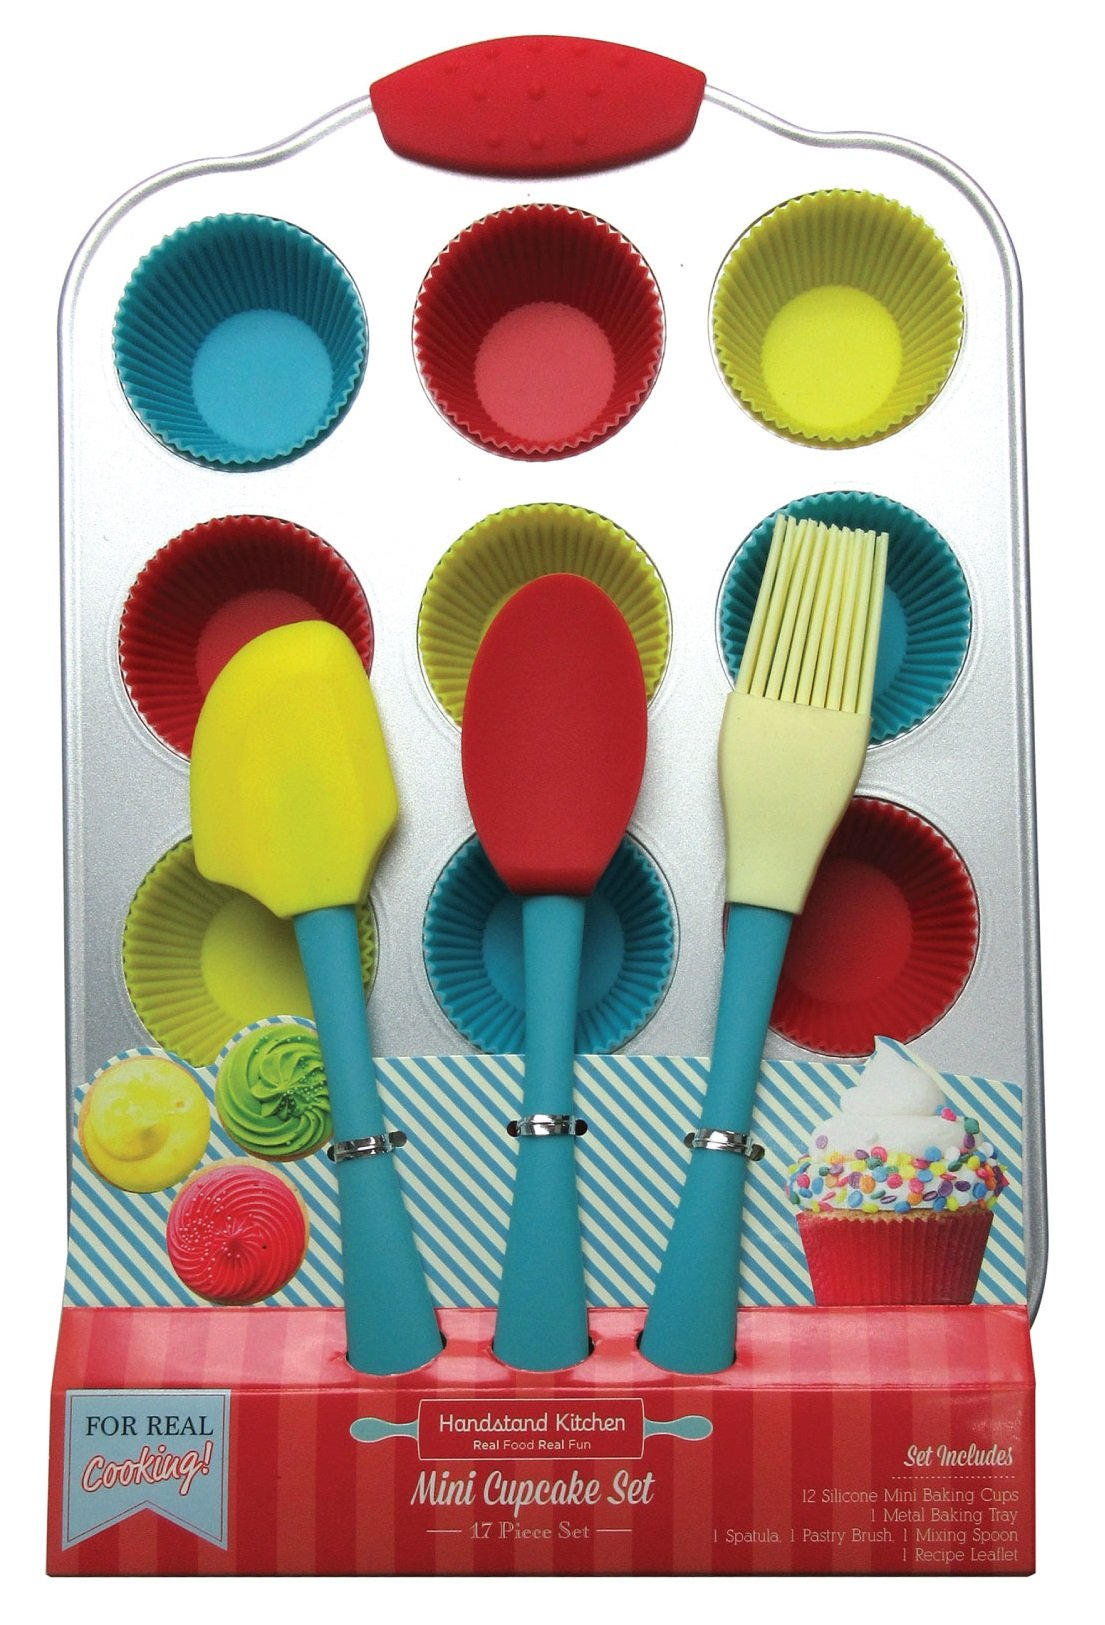 Handstand Kitchen 20-piece Real Mini Cupcake Baking Set with Recipes for Kids by Handstand Kitchen